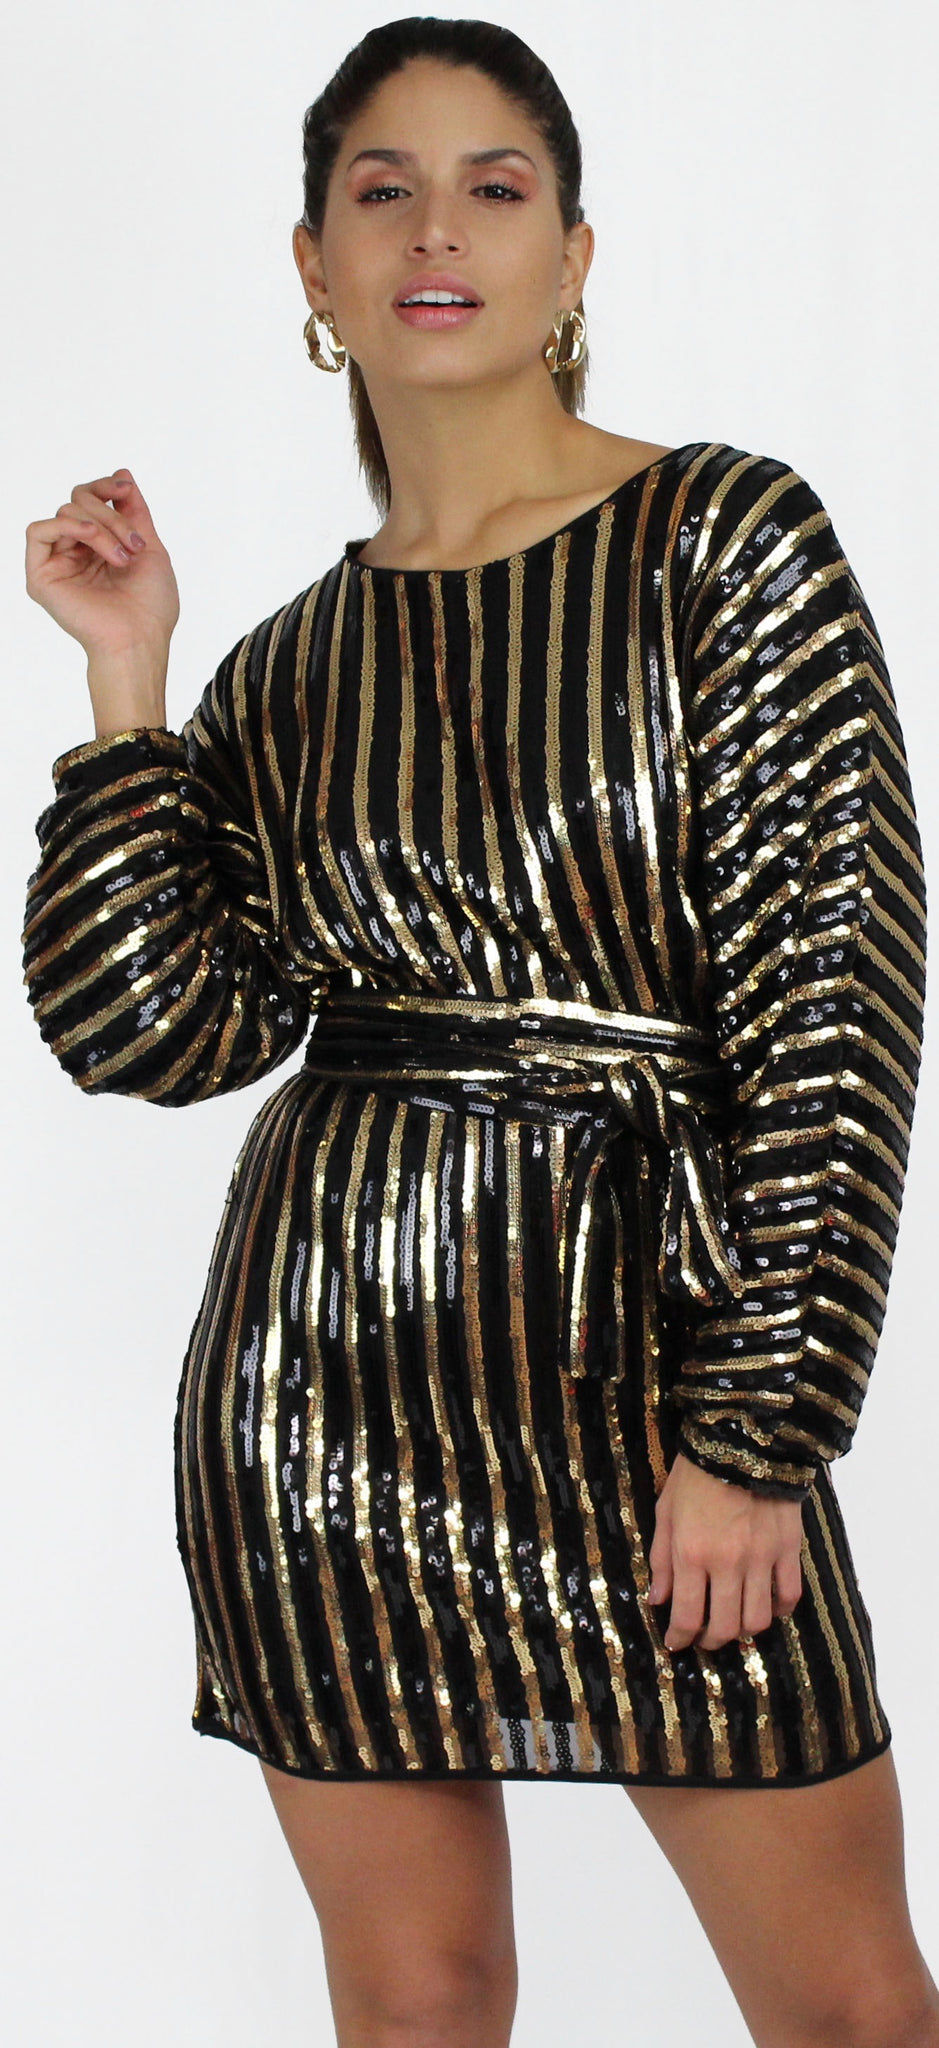 Glowing Steady Black and Gold Stripes Dress